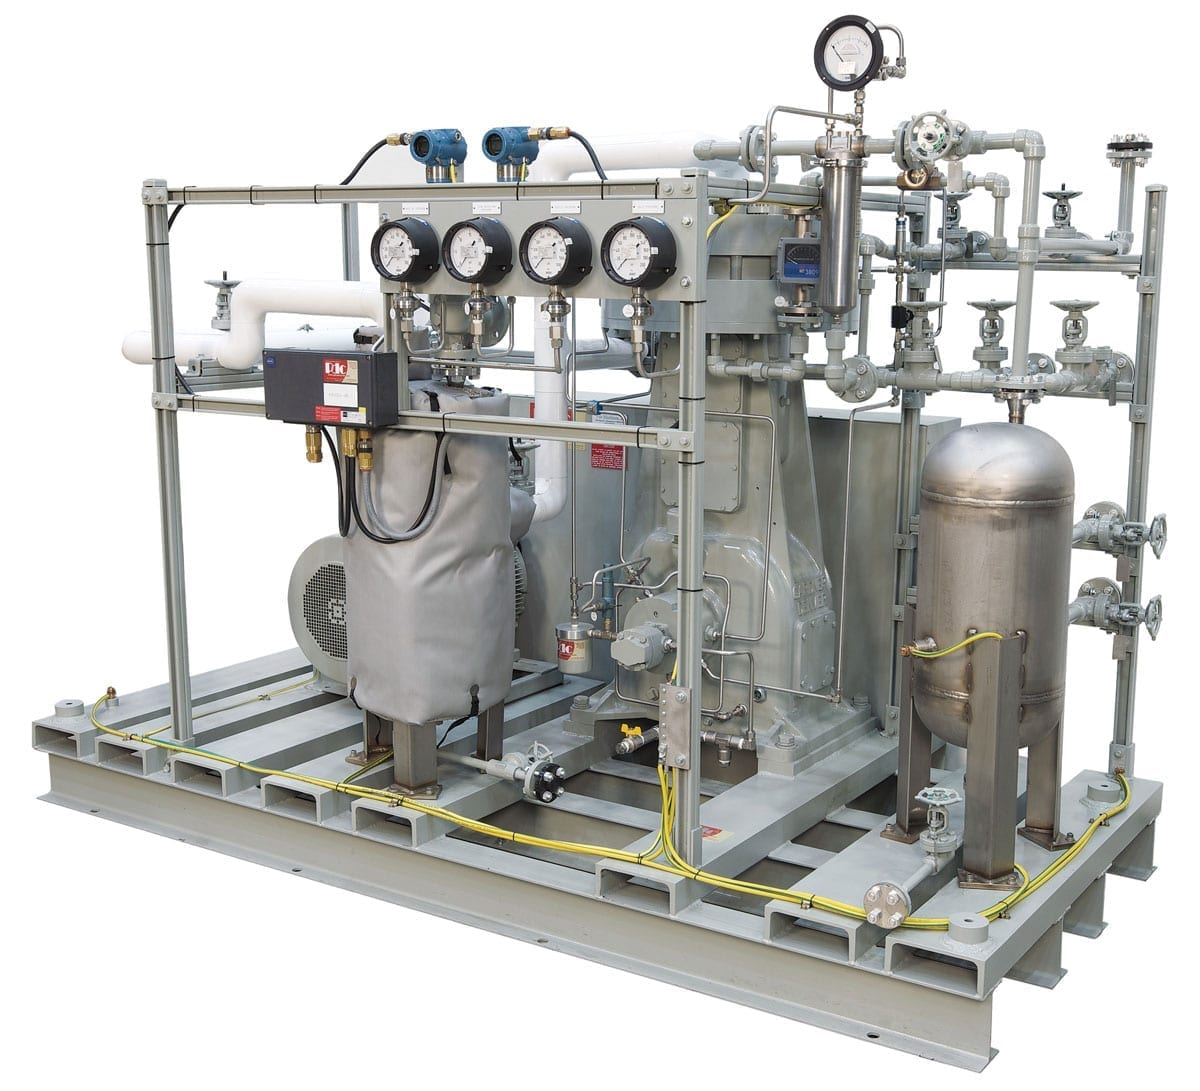 Single stage diaphragm compressor for specialty gases